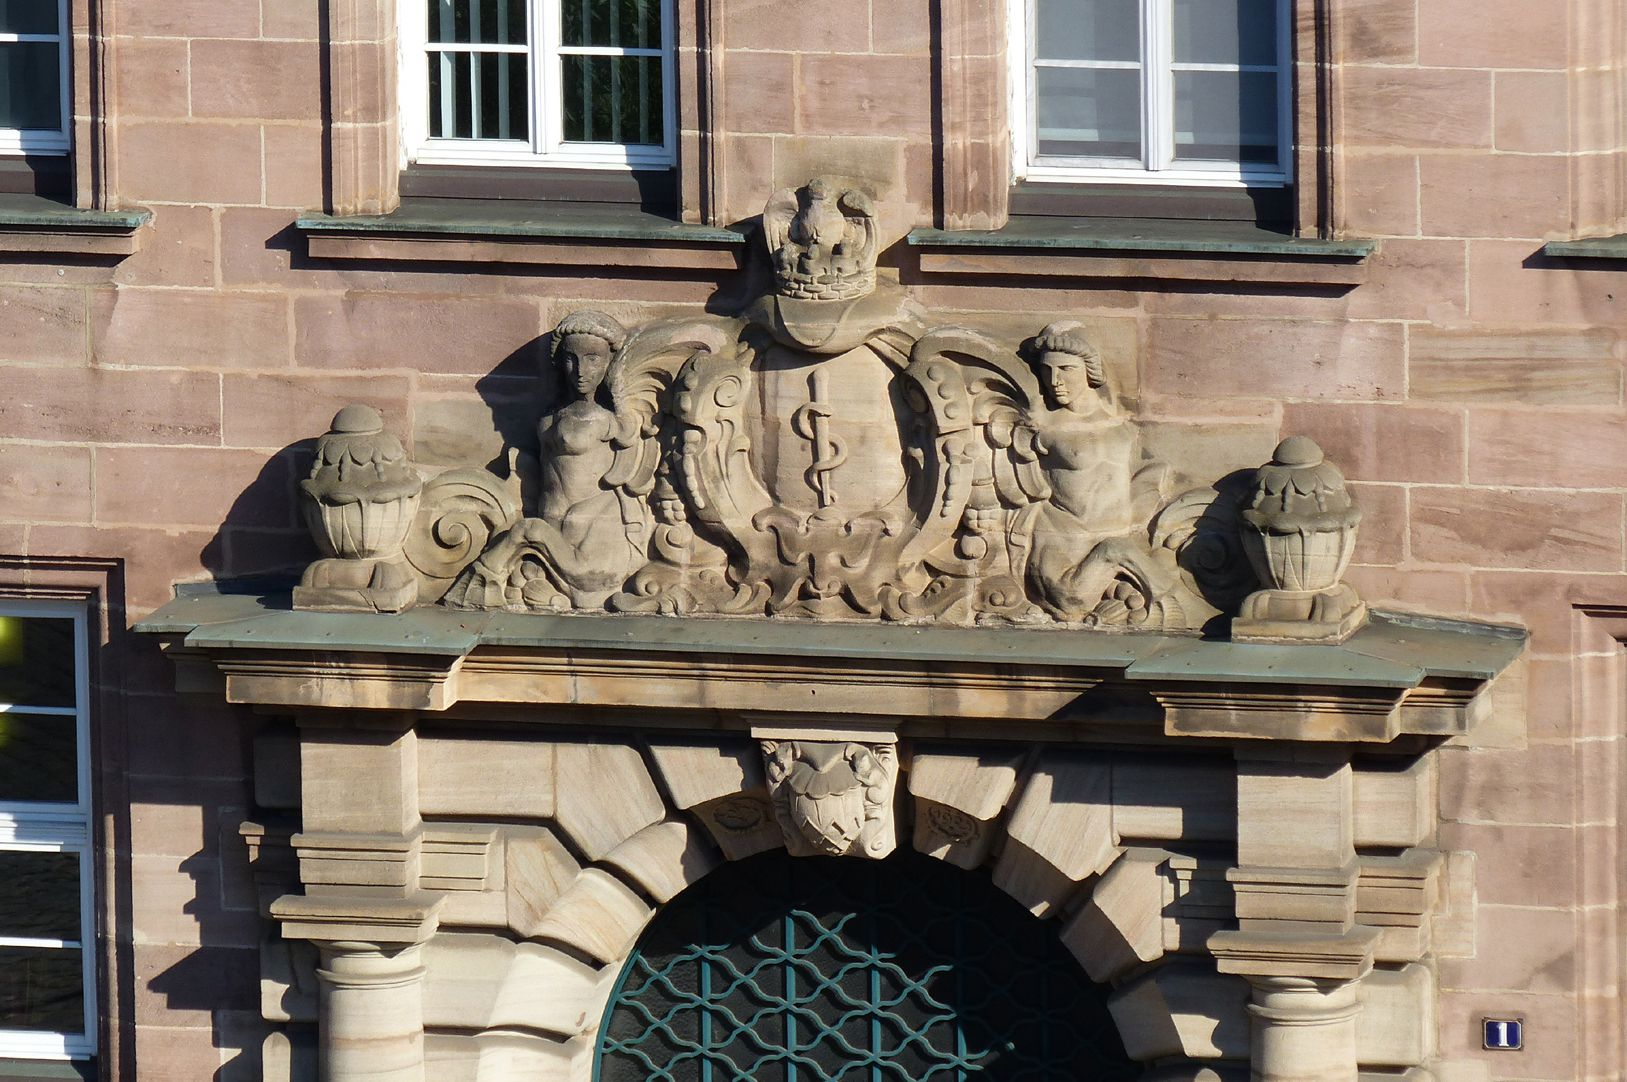 Former General Health Insurance Crowning structure of the main portal with the Aesculapian coat of arms